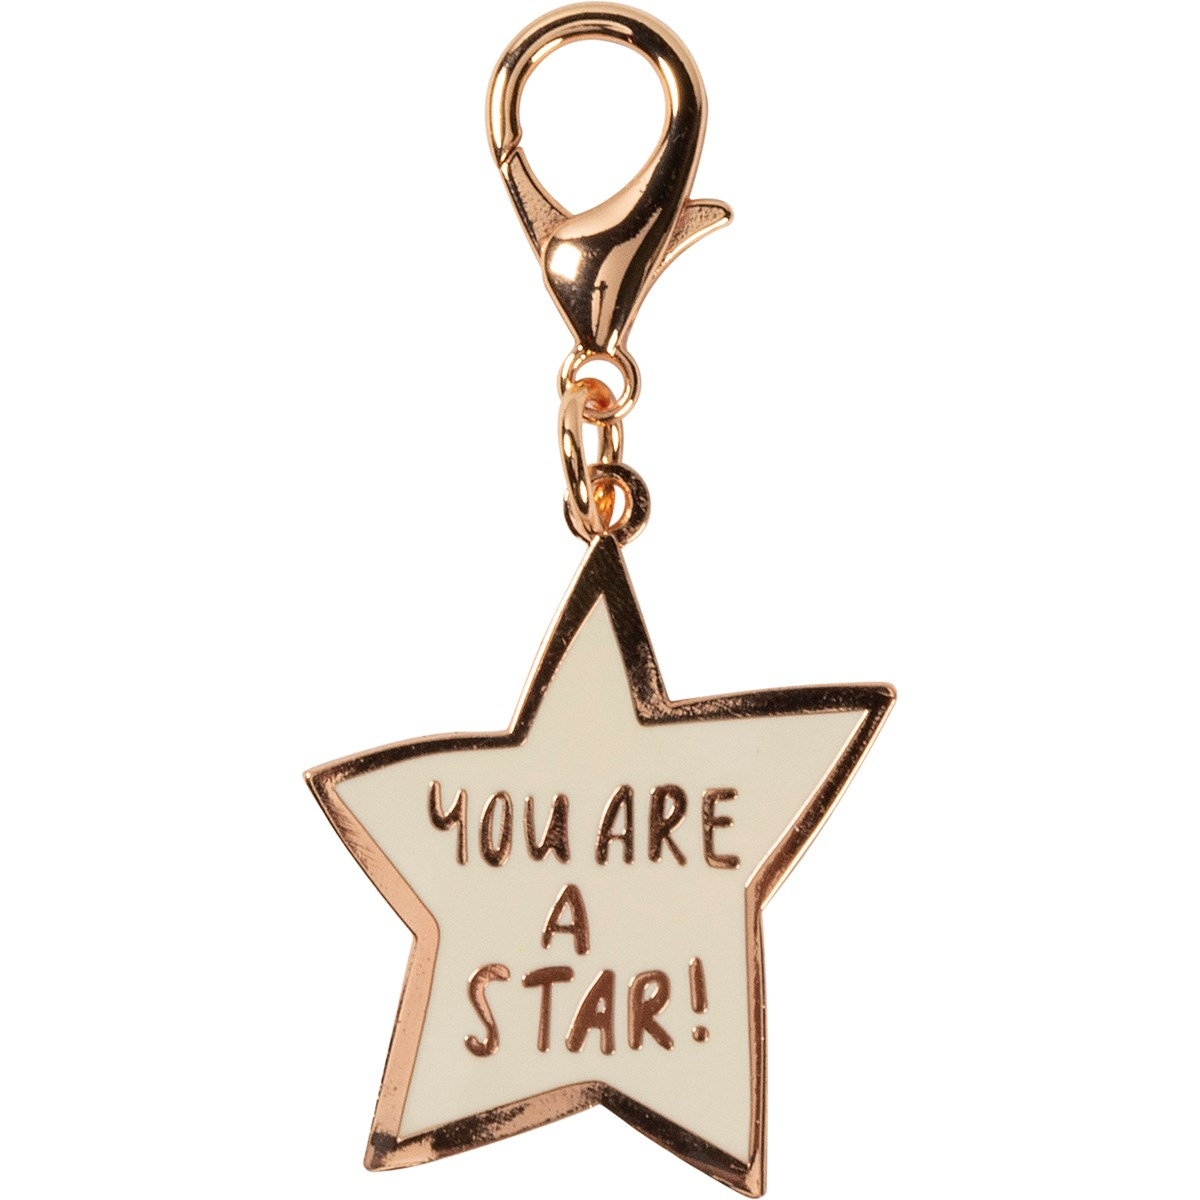 "Charm - You Are A Star - 1.50"" x 1.50"", Card: 3"" x 5"" - Metal, Enamel, Paper"